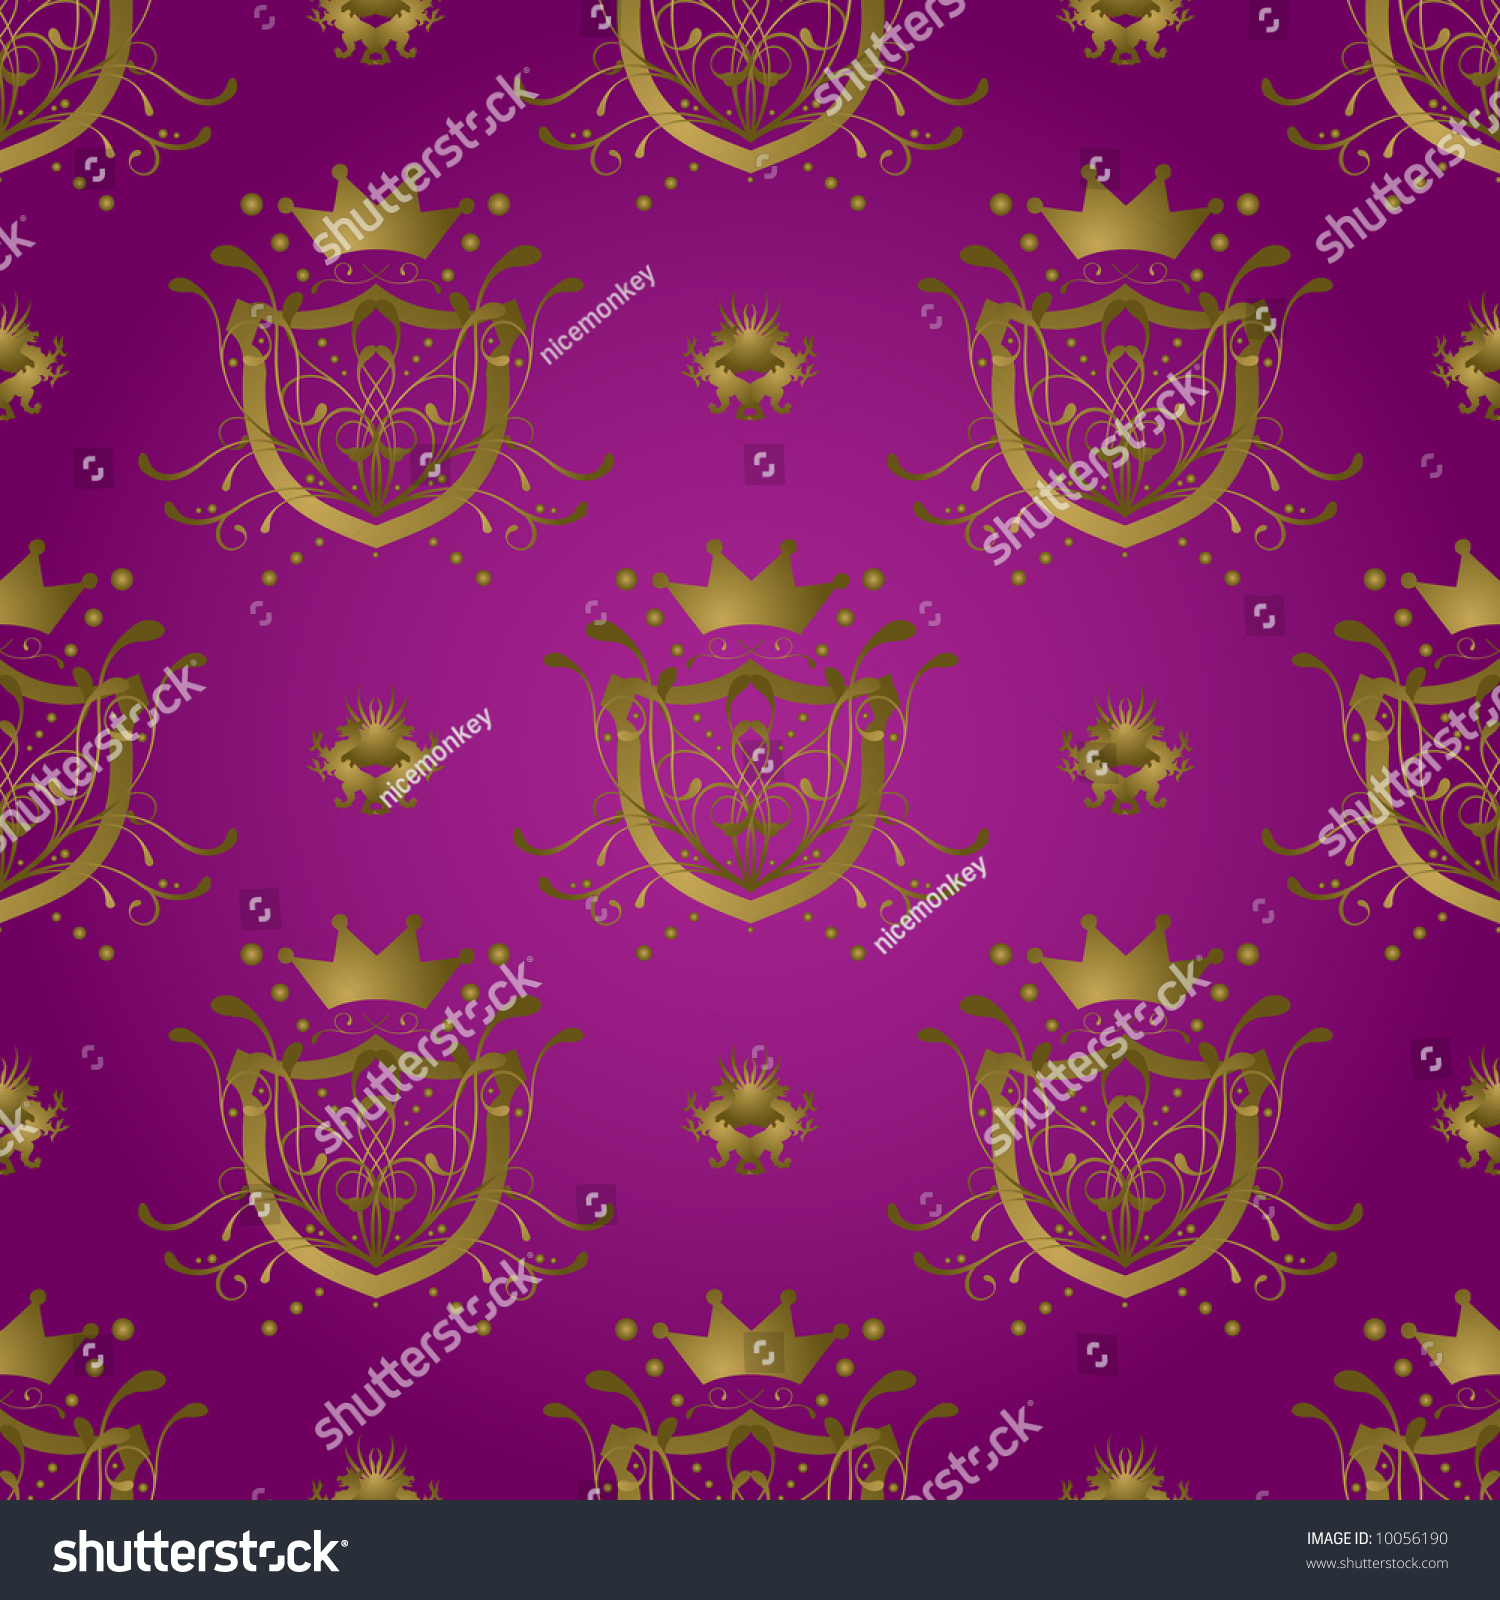 royal purple and gold background 2018 images amp pictures